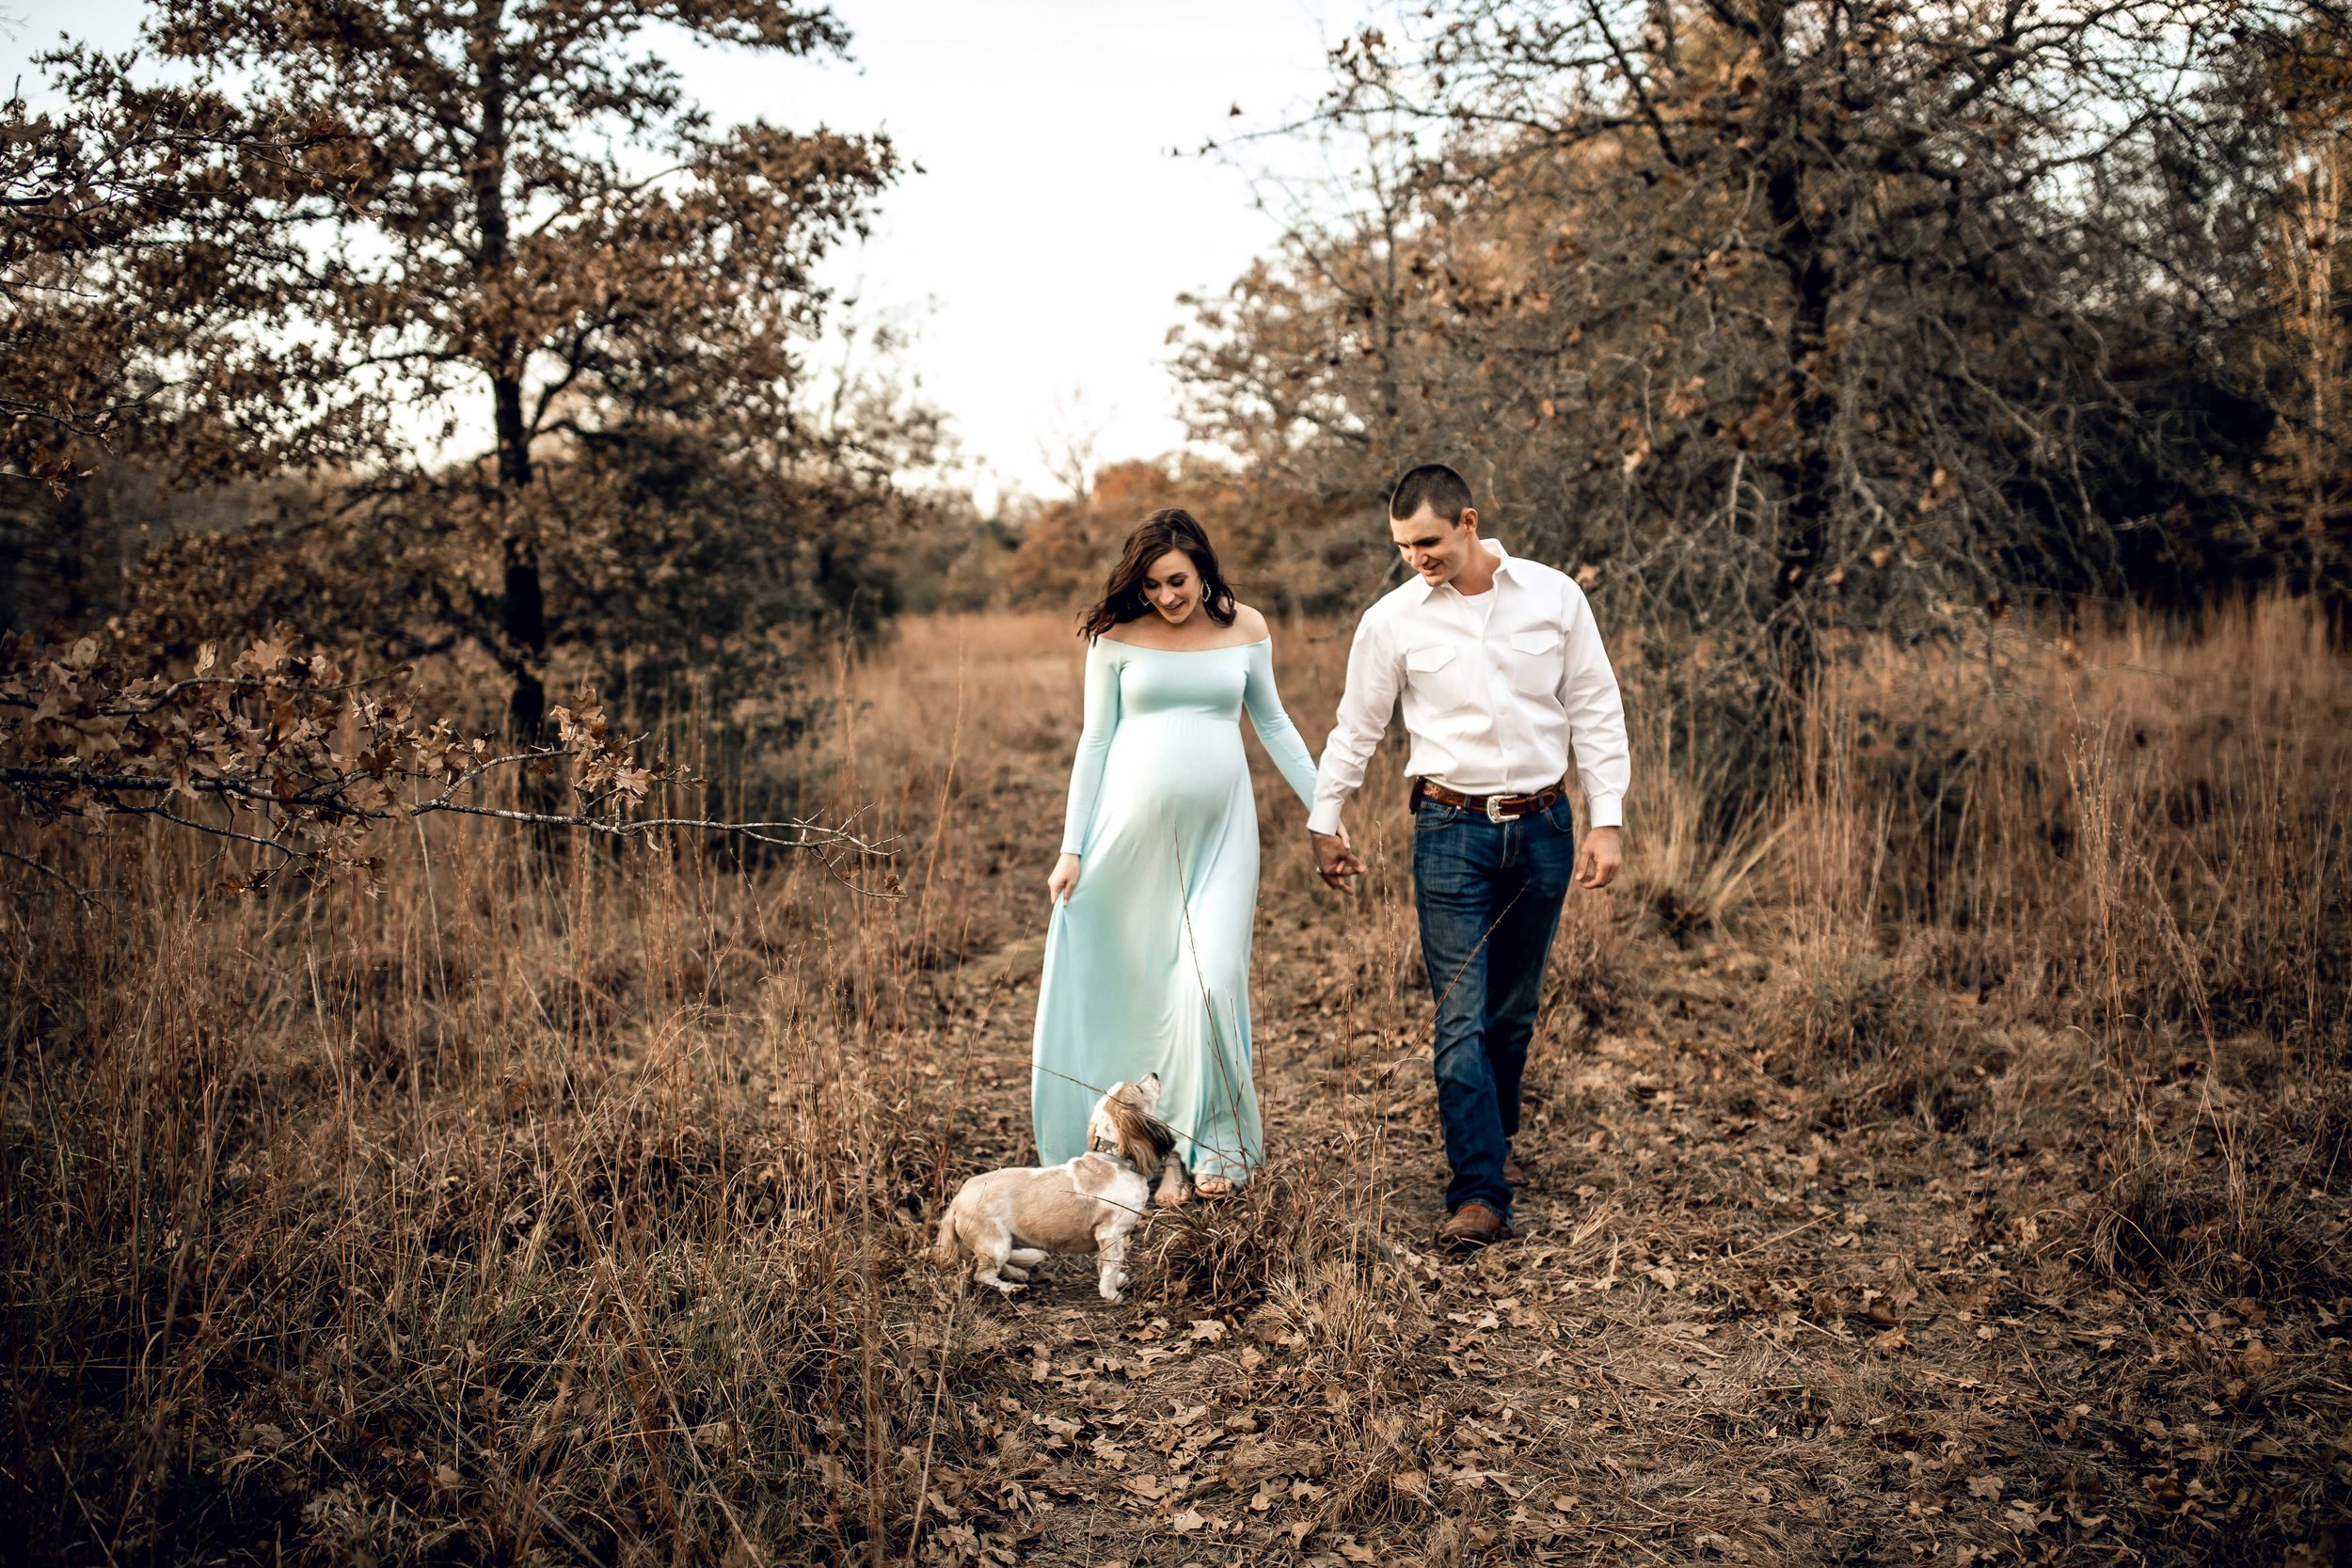 shelby-schiller-photography-maternity-walking-holding-hands-with-dog.jpg